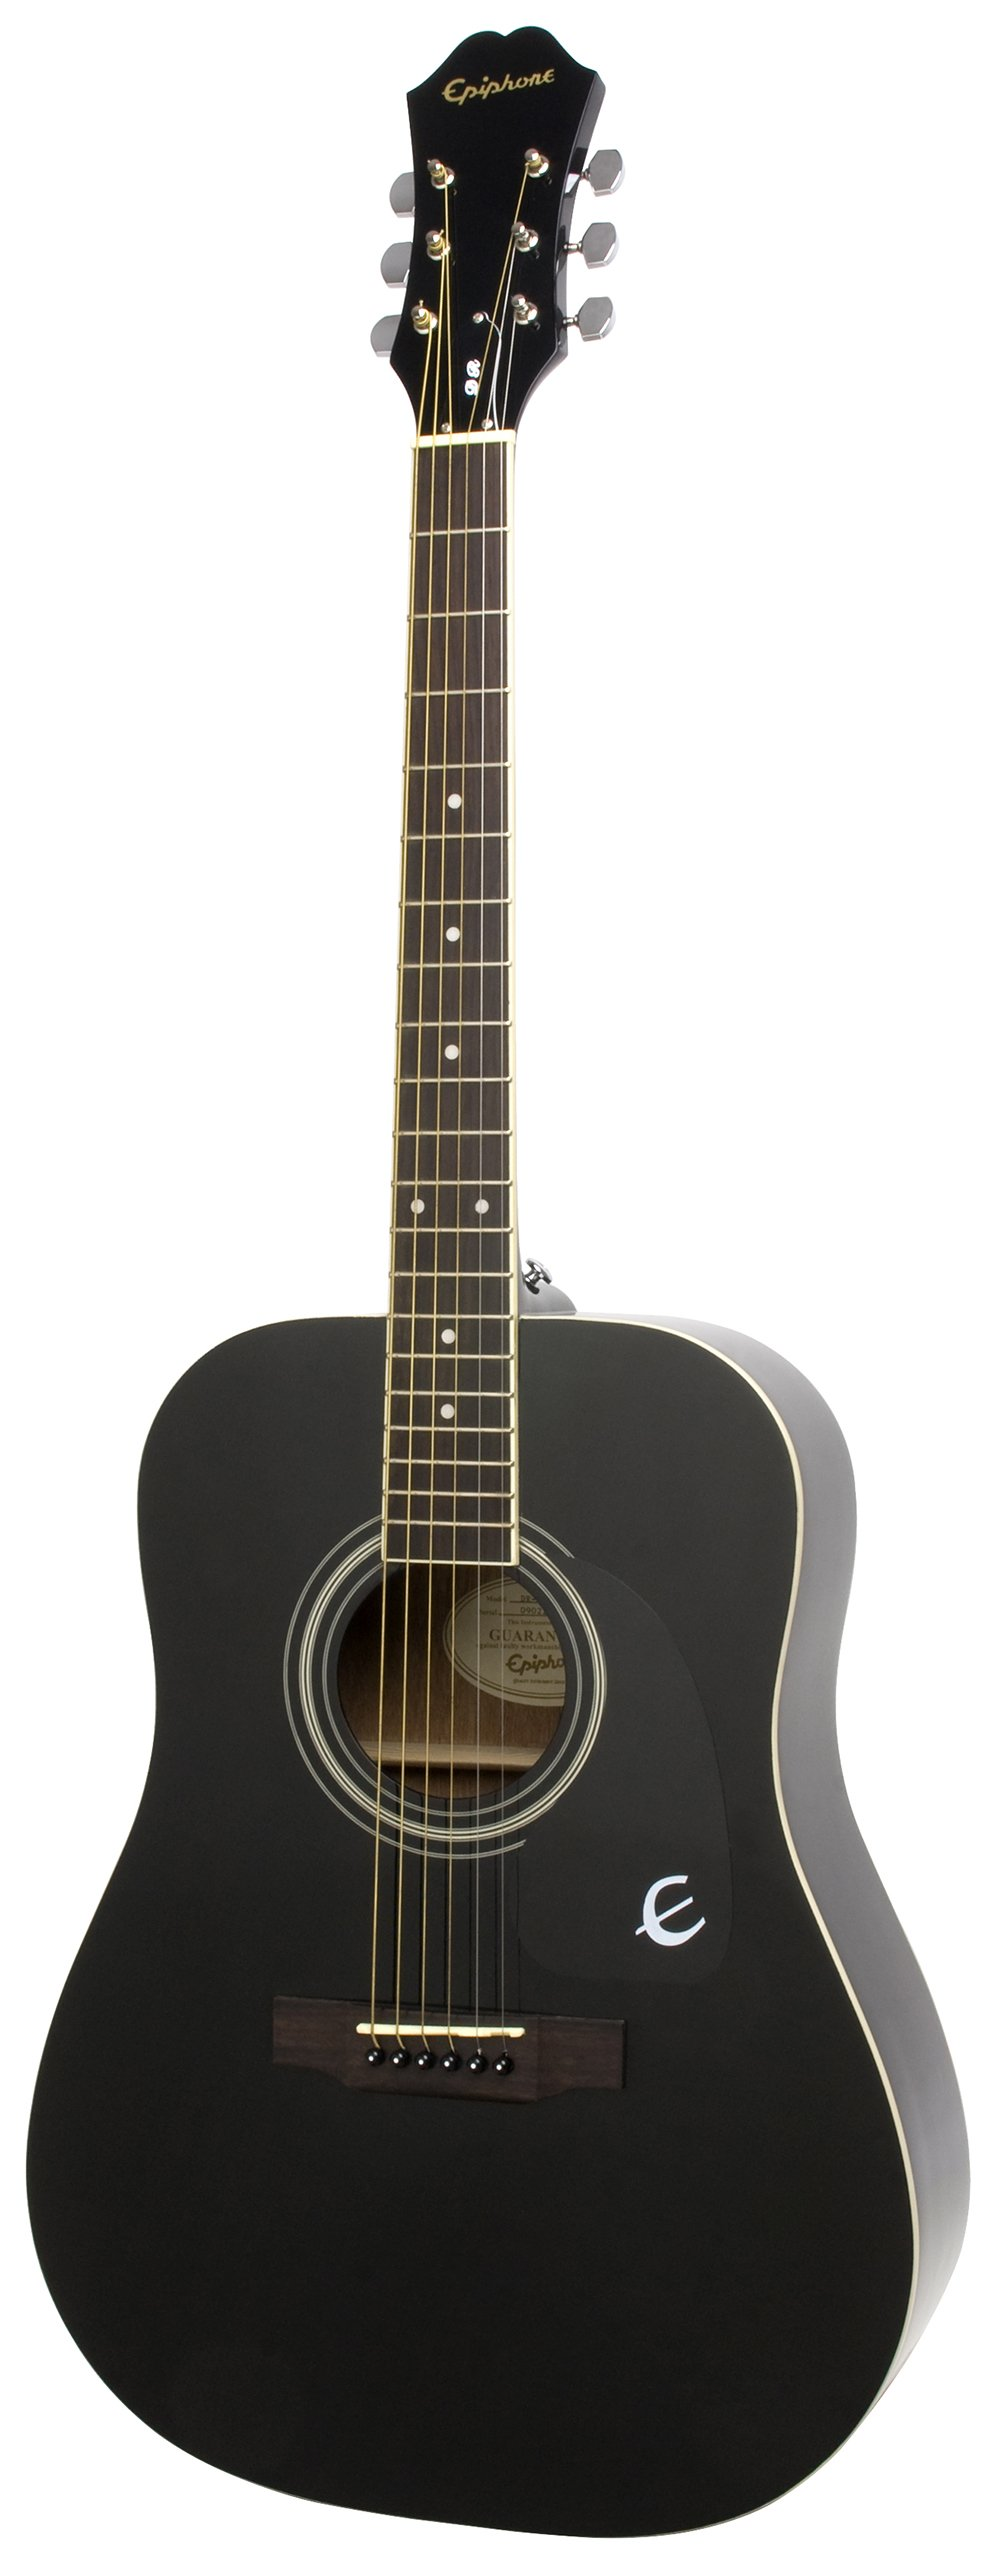 Epiphone DR-100 Acoustic Guitar, Ebony by Epiphone